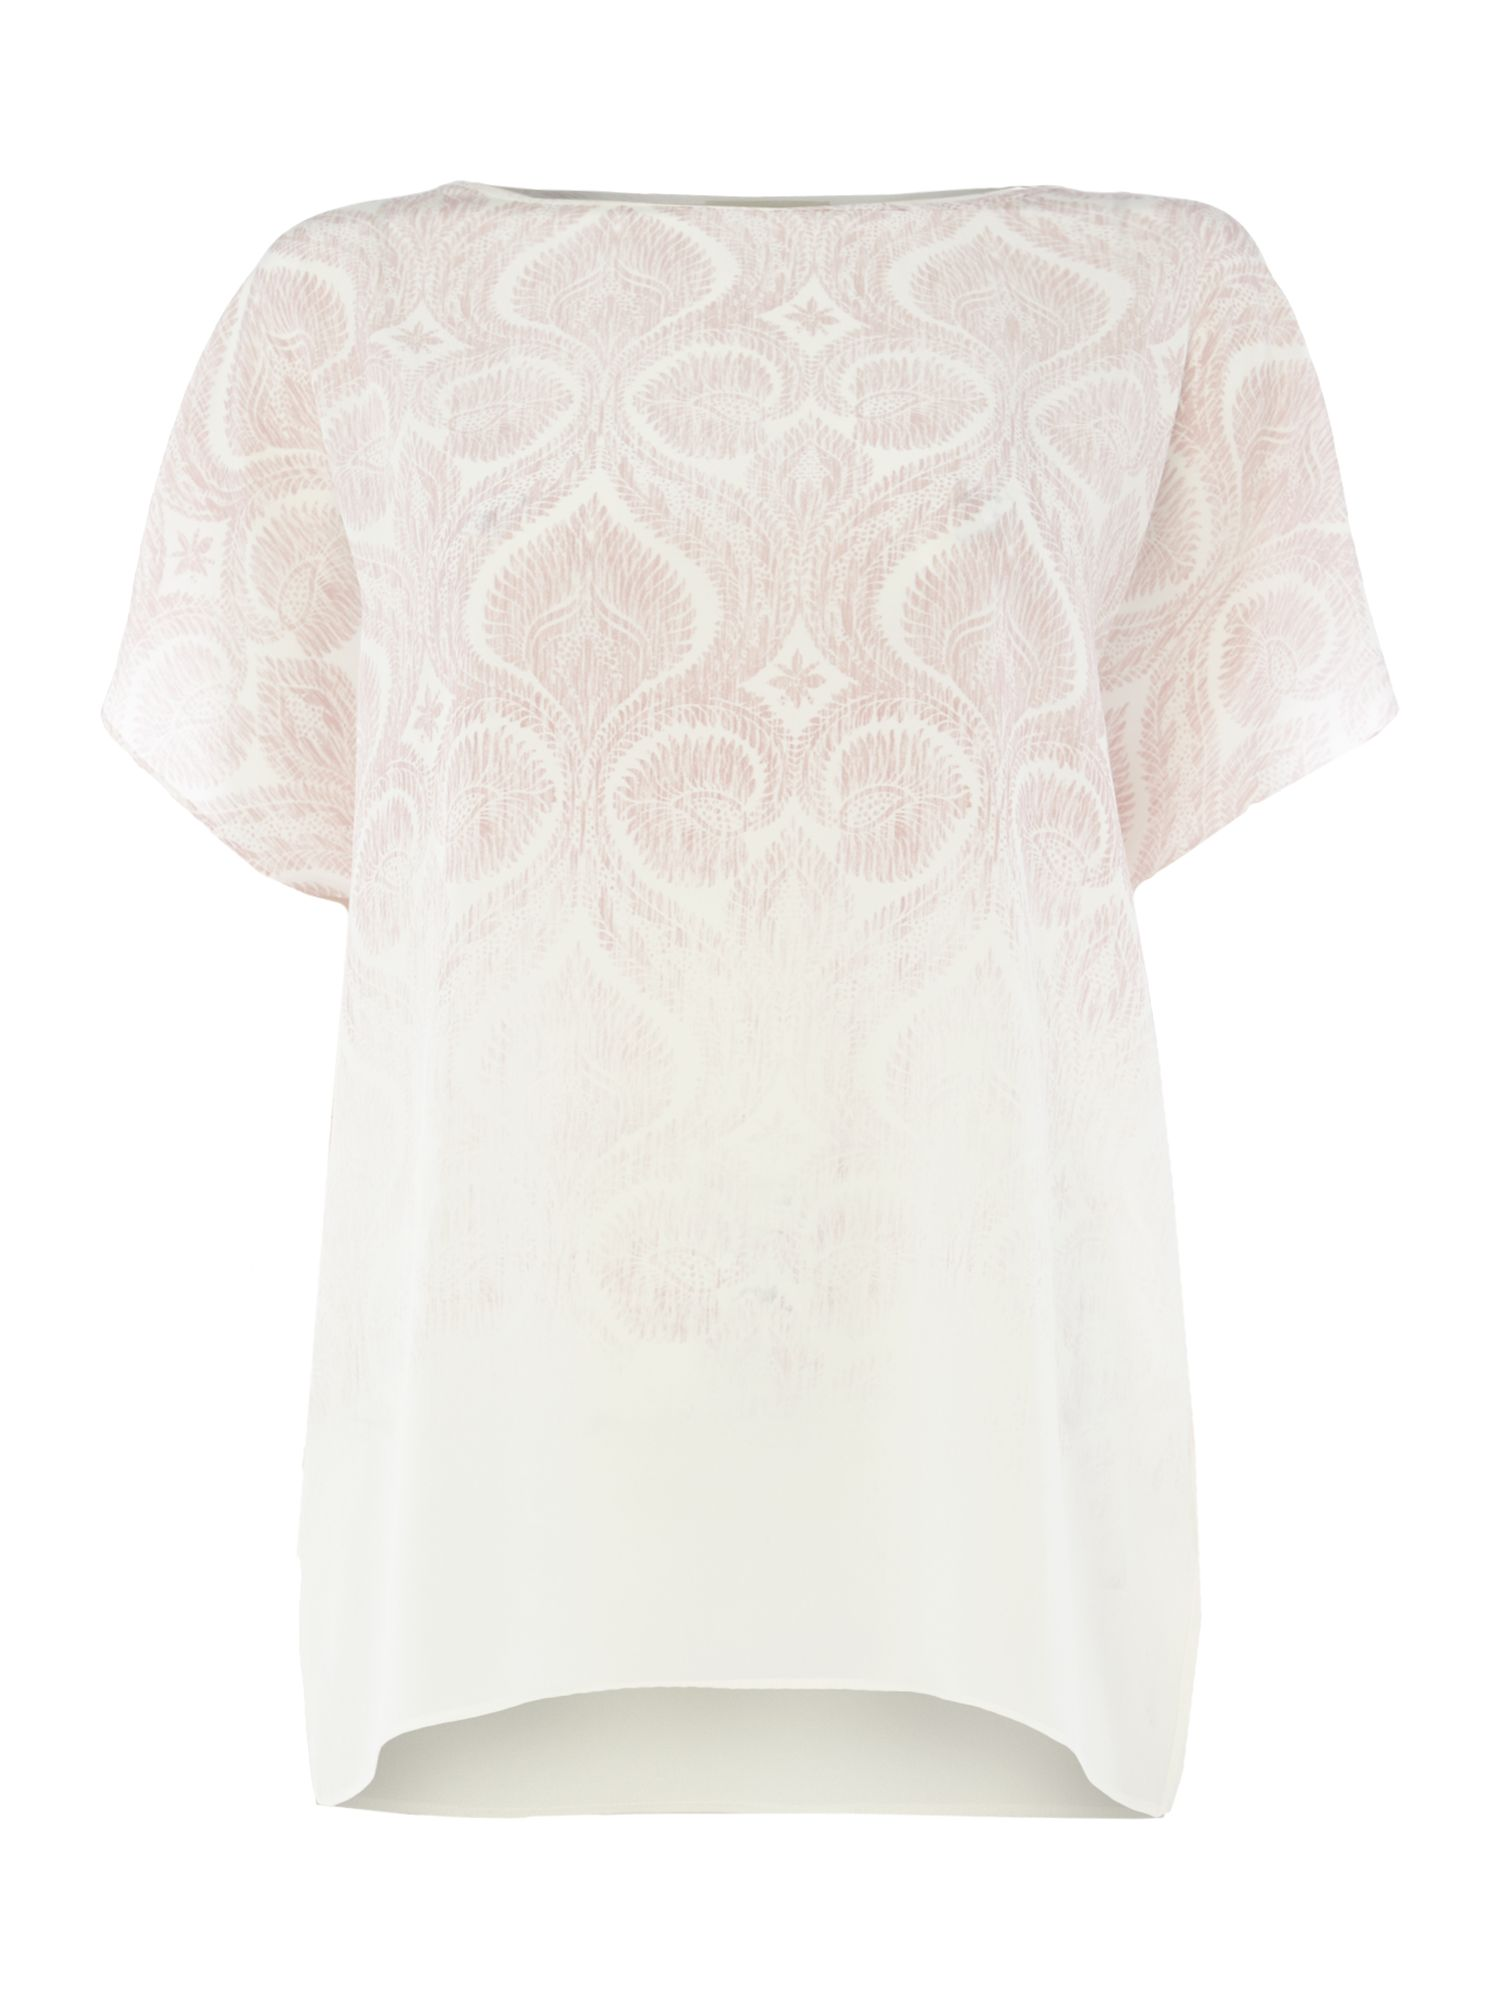 Repeat Cashmere Ombre printed short sleeve silk top, Light Pink